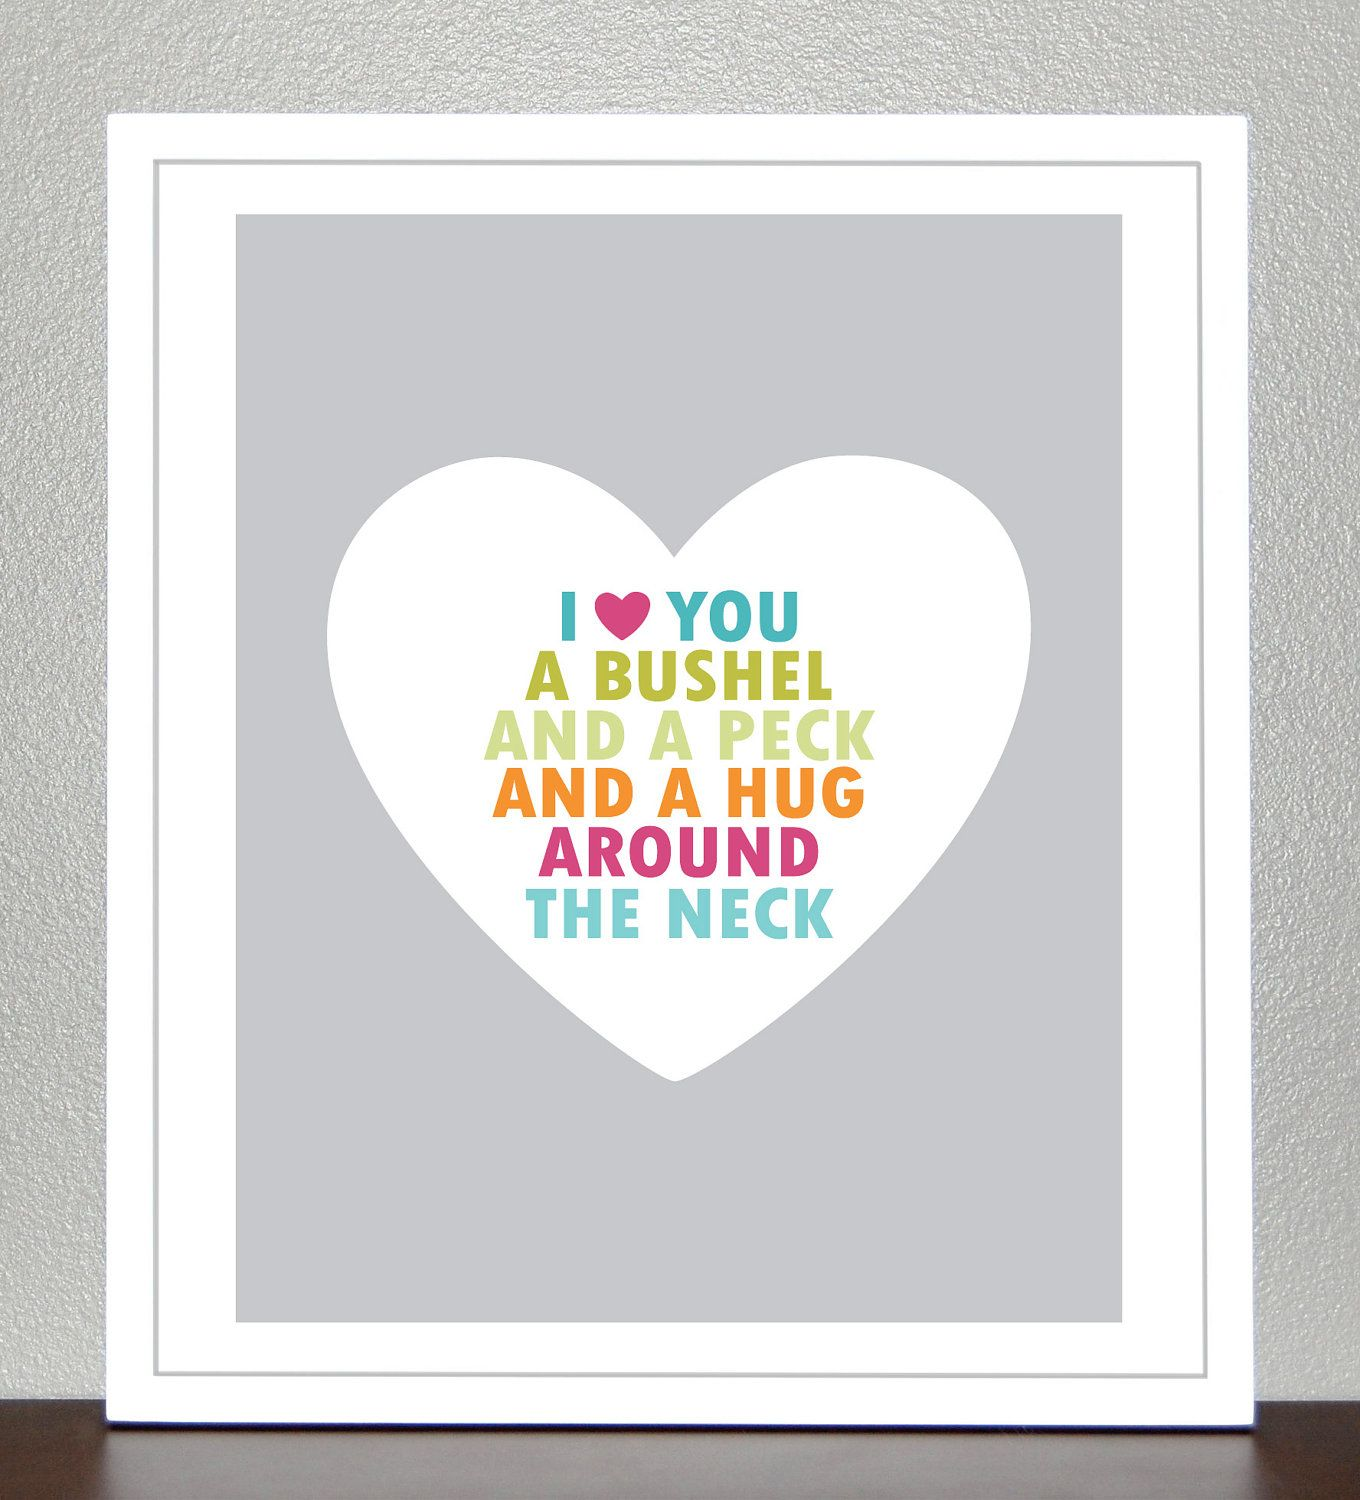 Prints for kids a bushel and a peck and a hug around the neck